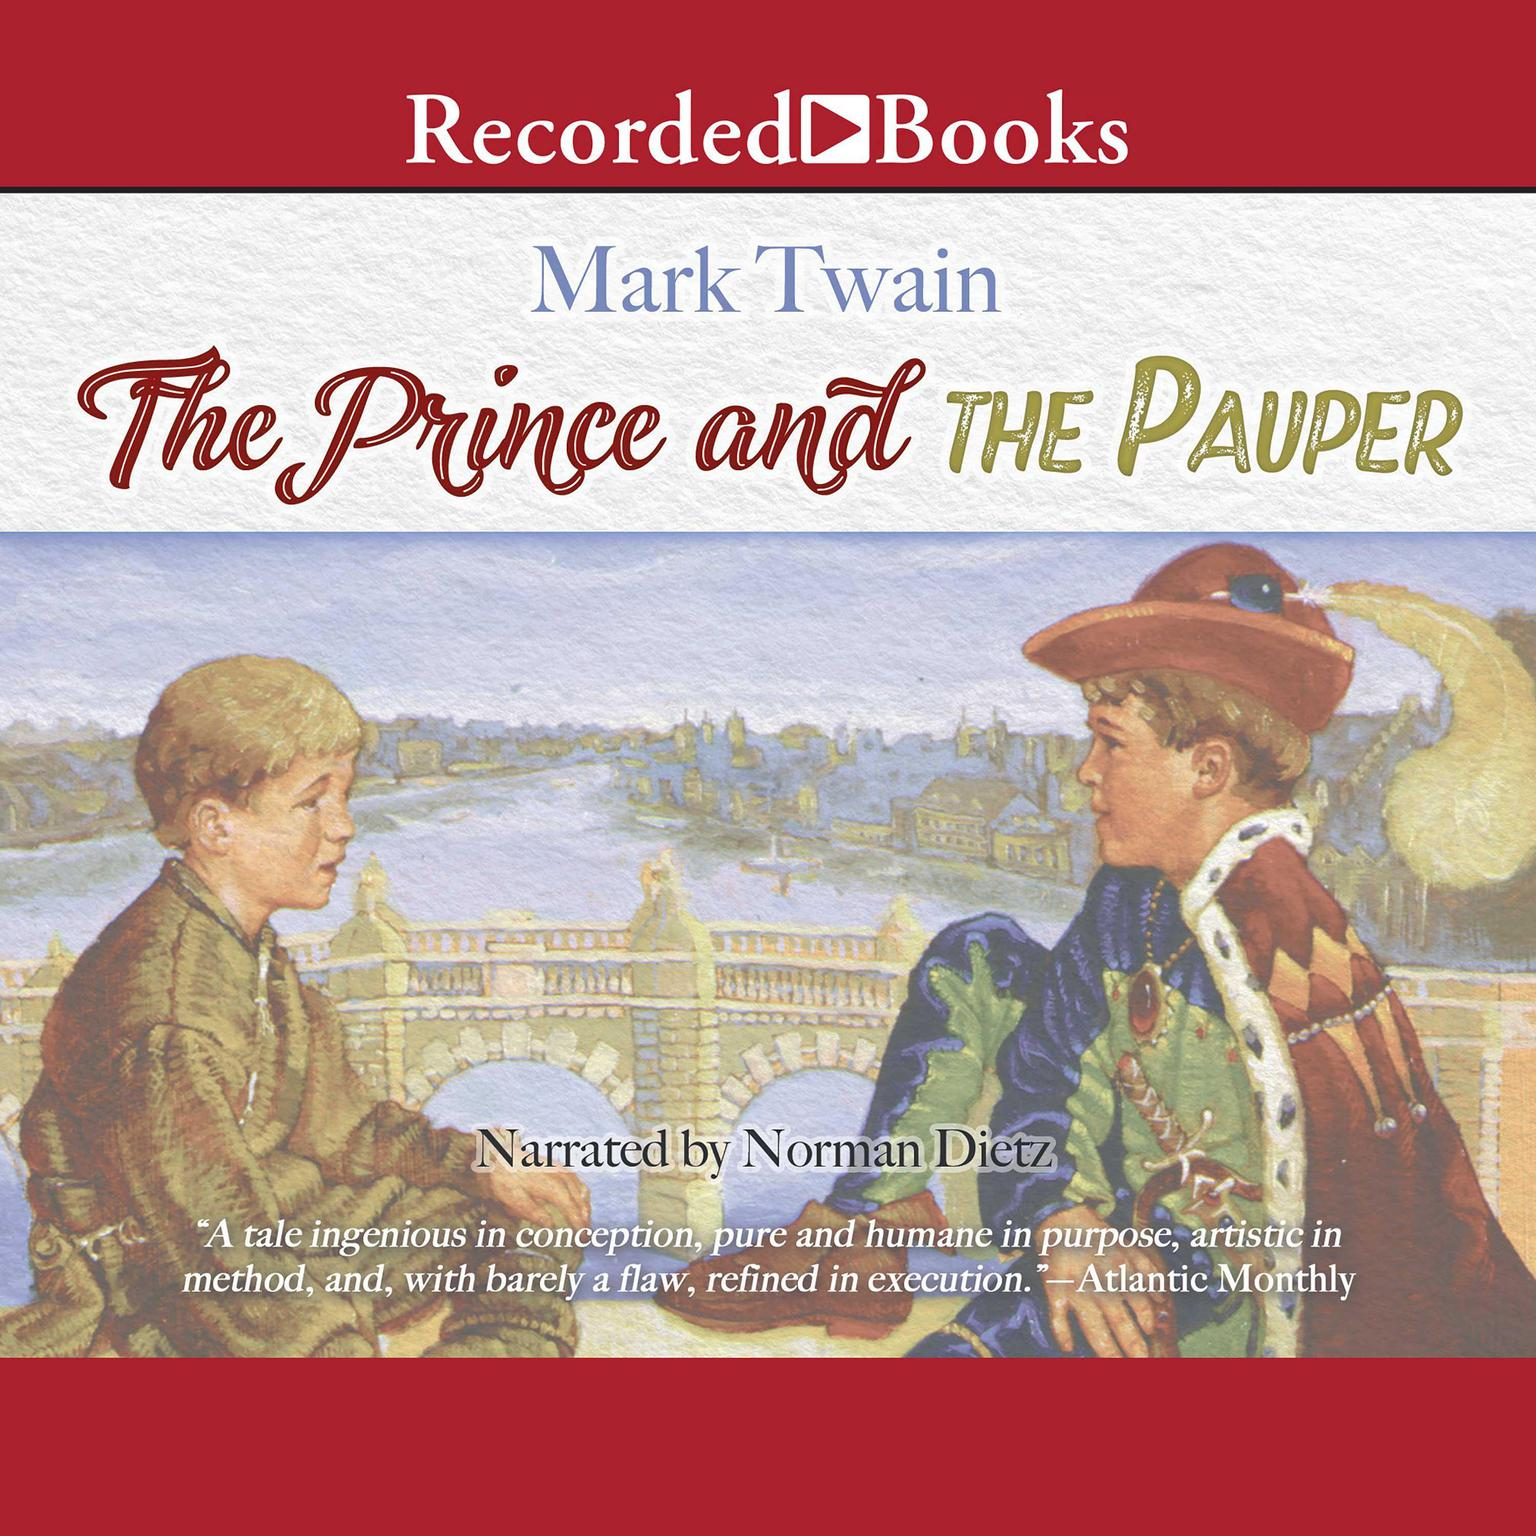 Essay about the prince and the pauper